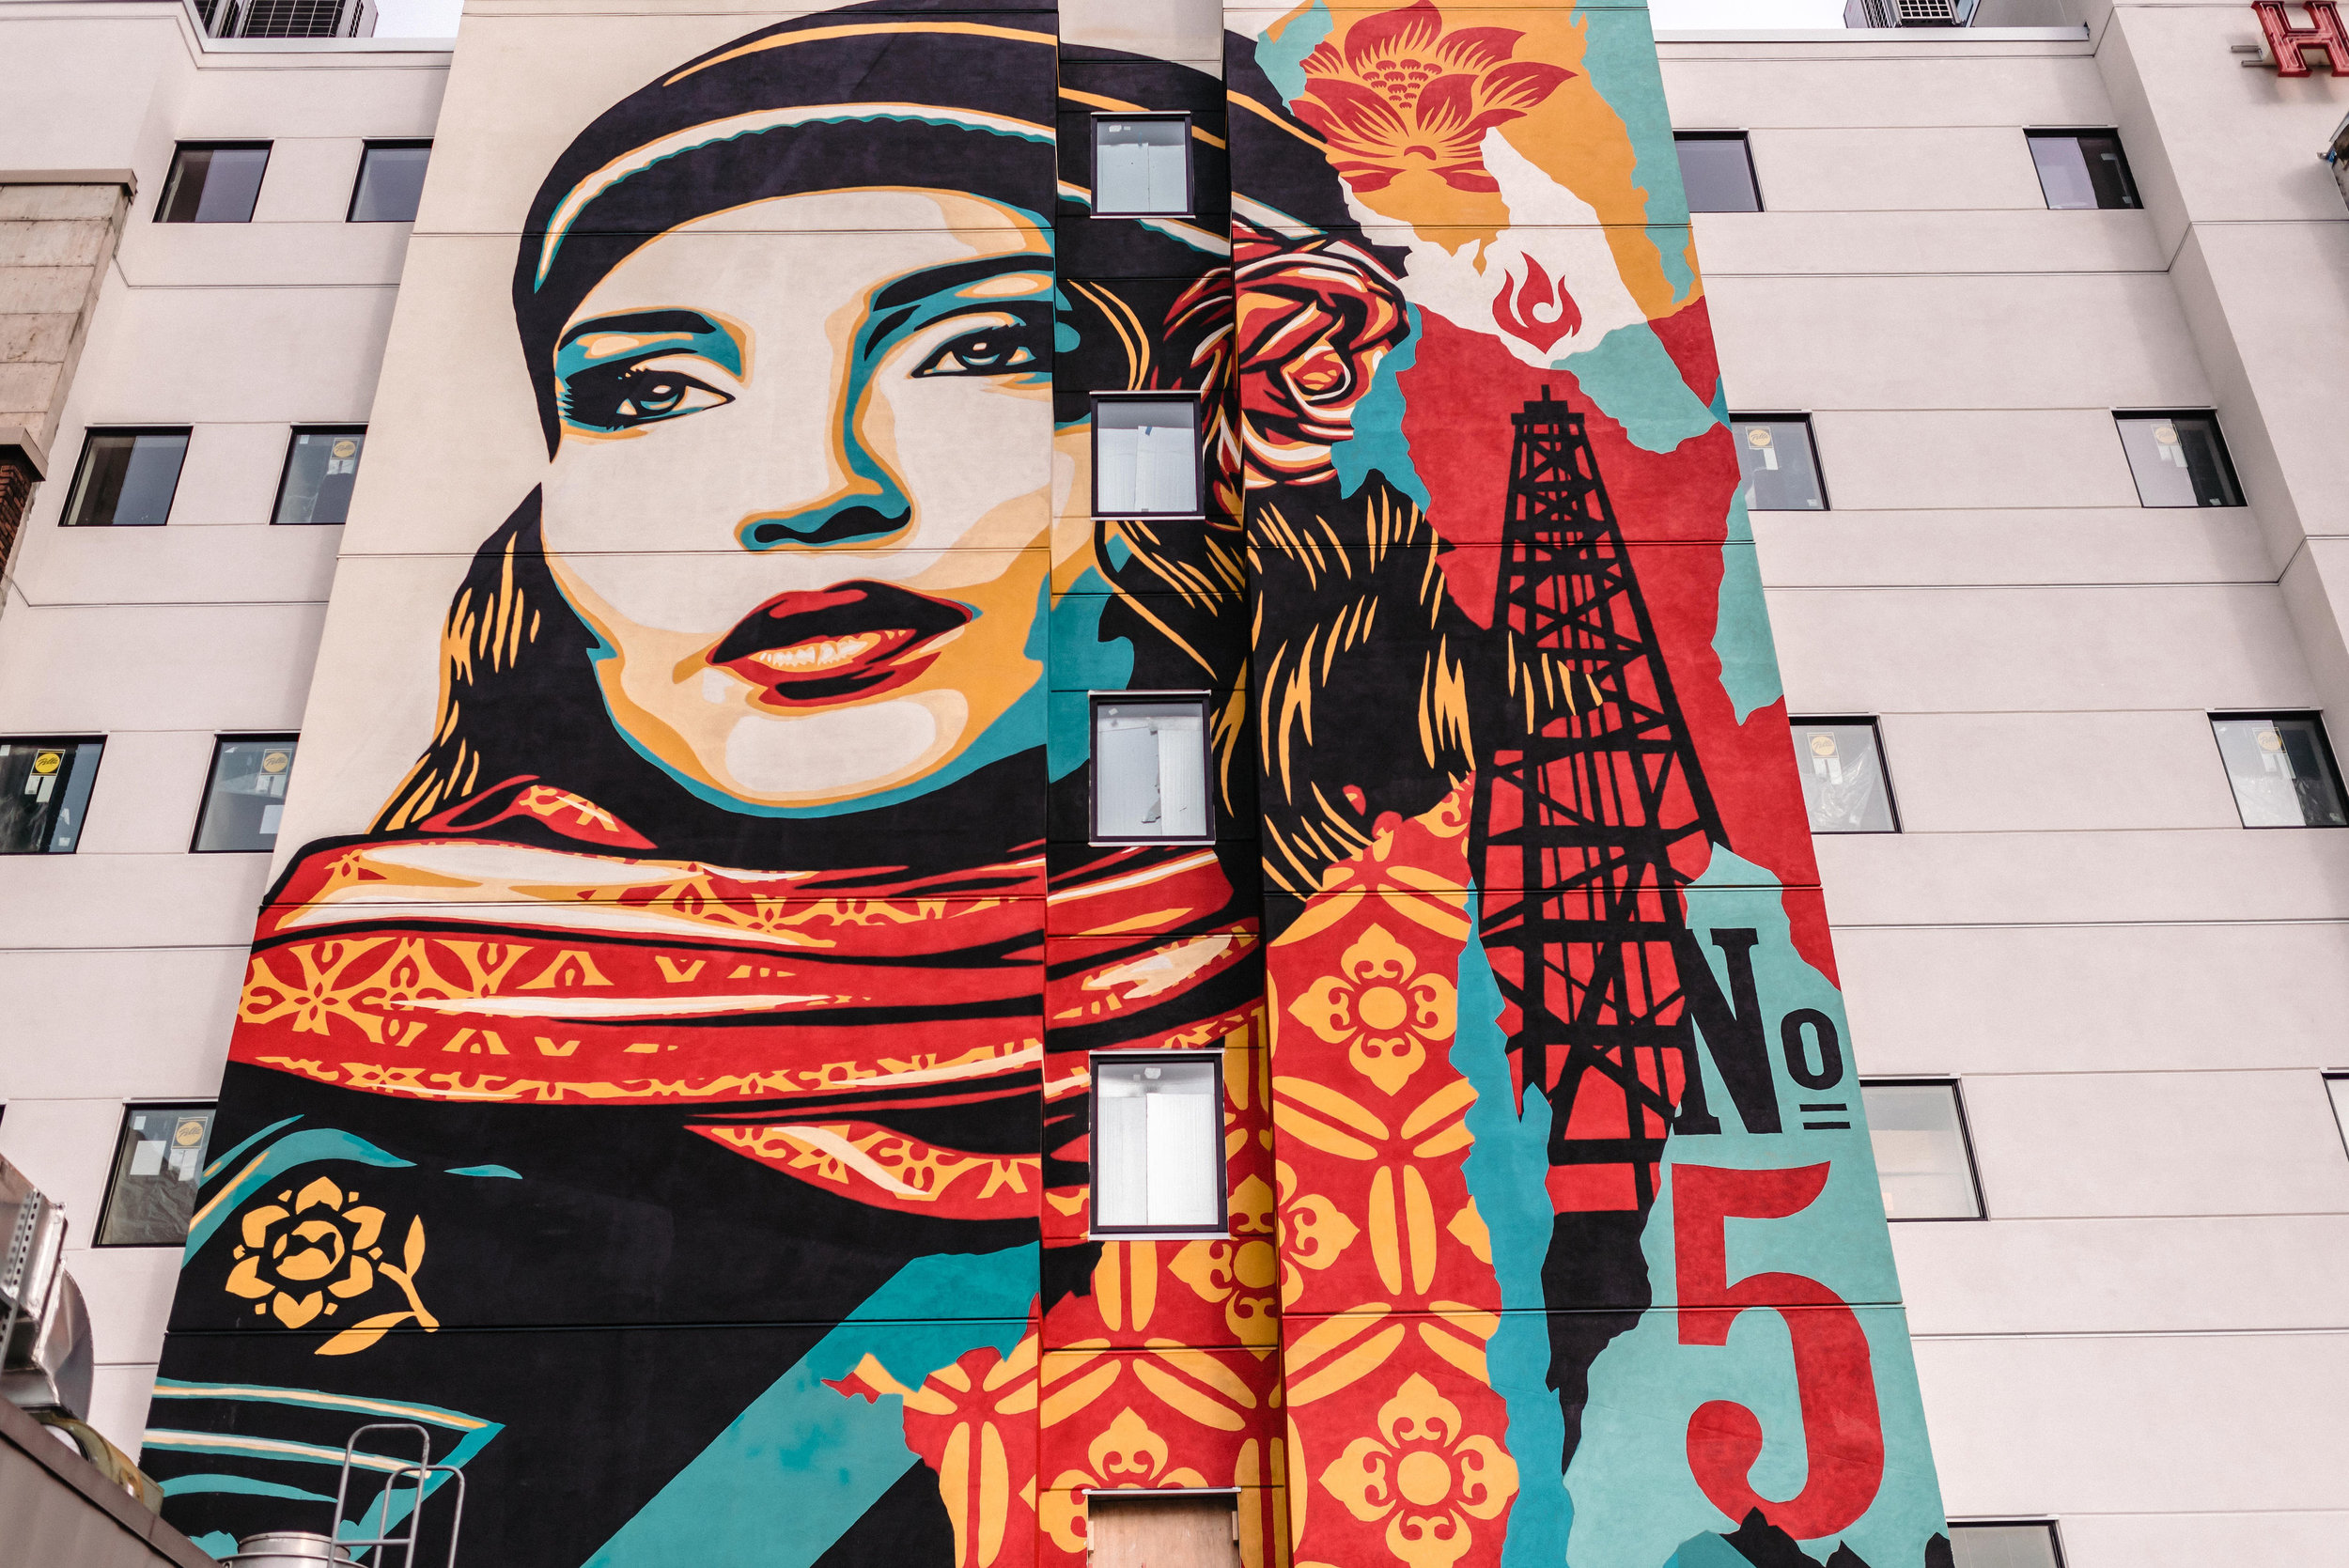 Building Mural at The State Hotel  (photo courtesy of The State Hotel)